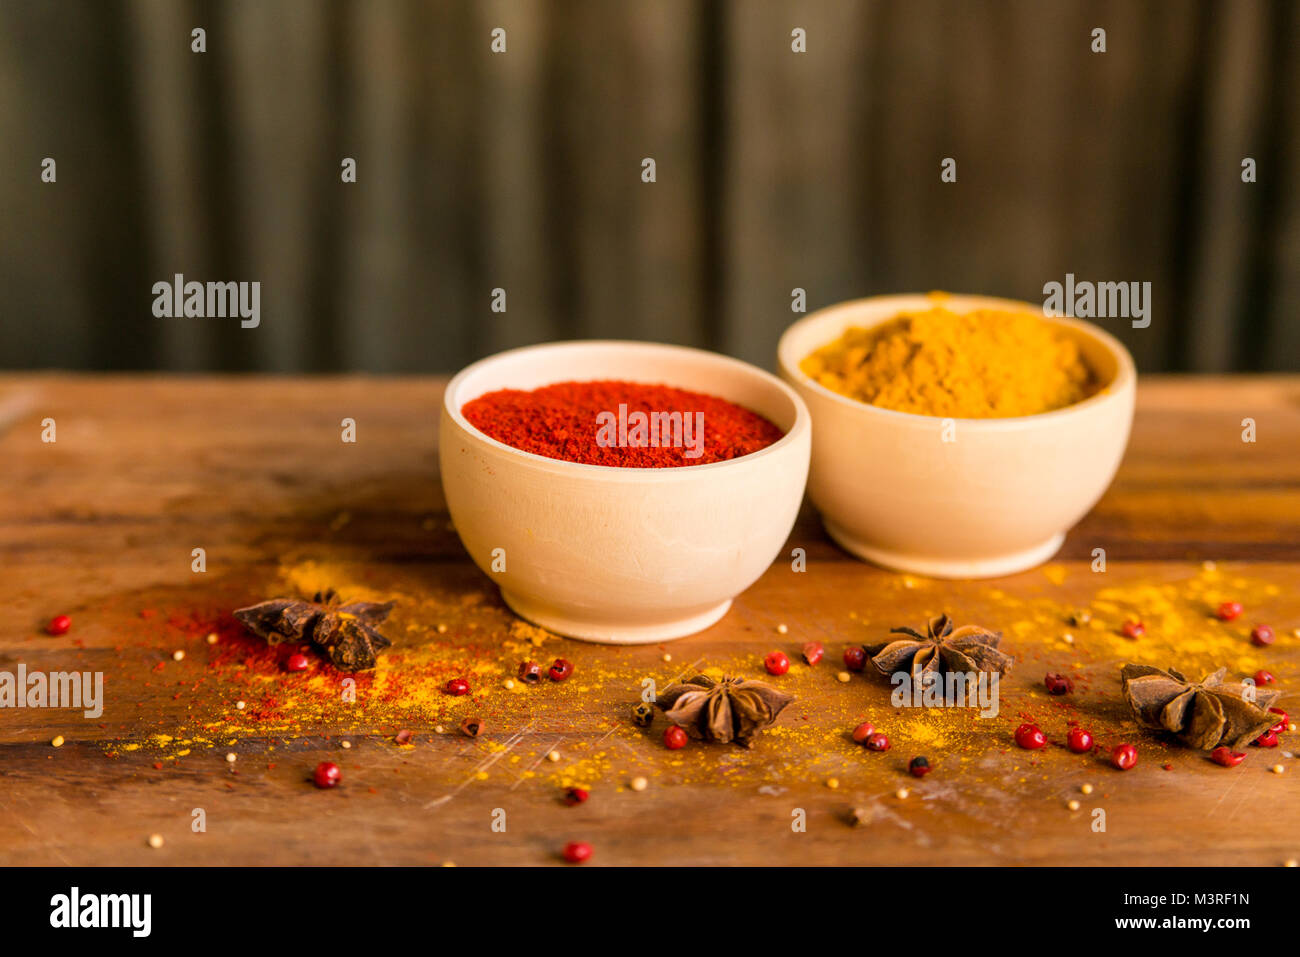 Two wooden bowls with paprika and turmeric powder - Stock Image